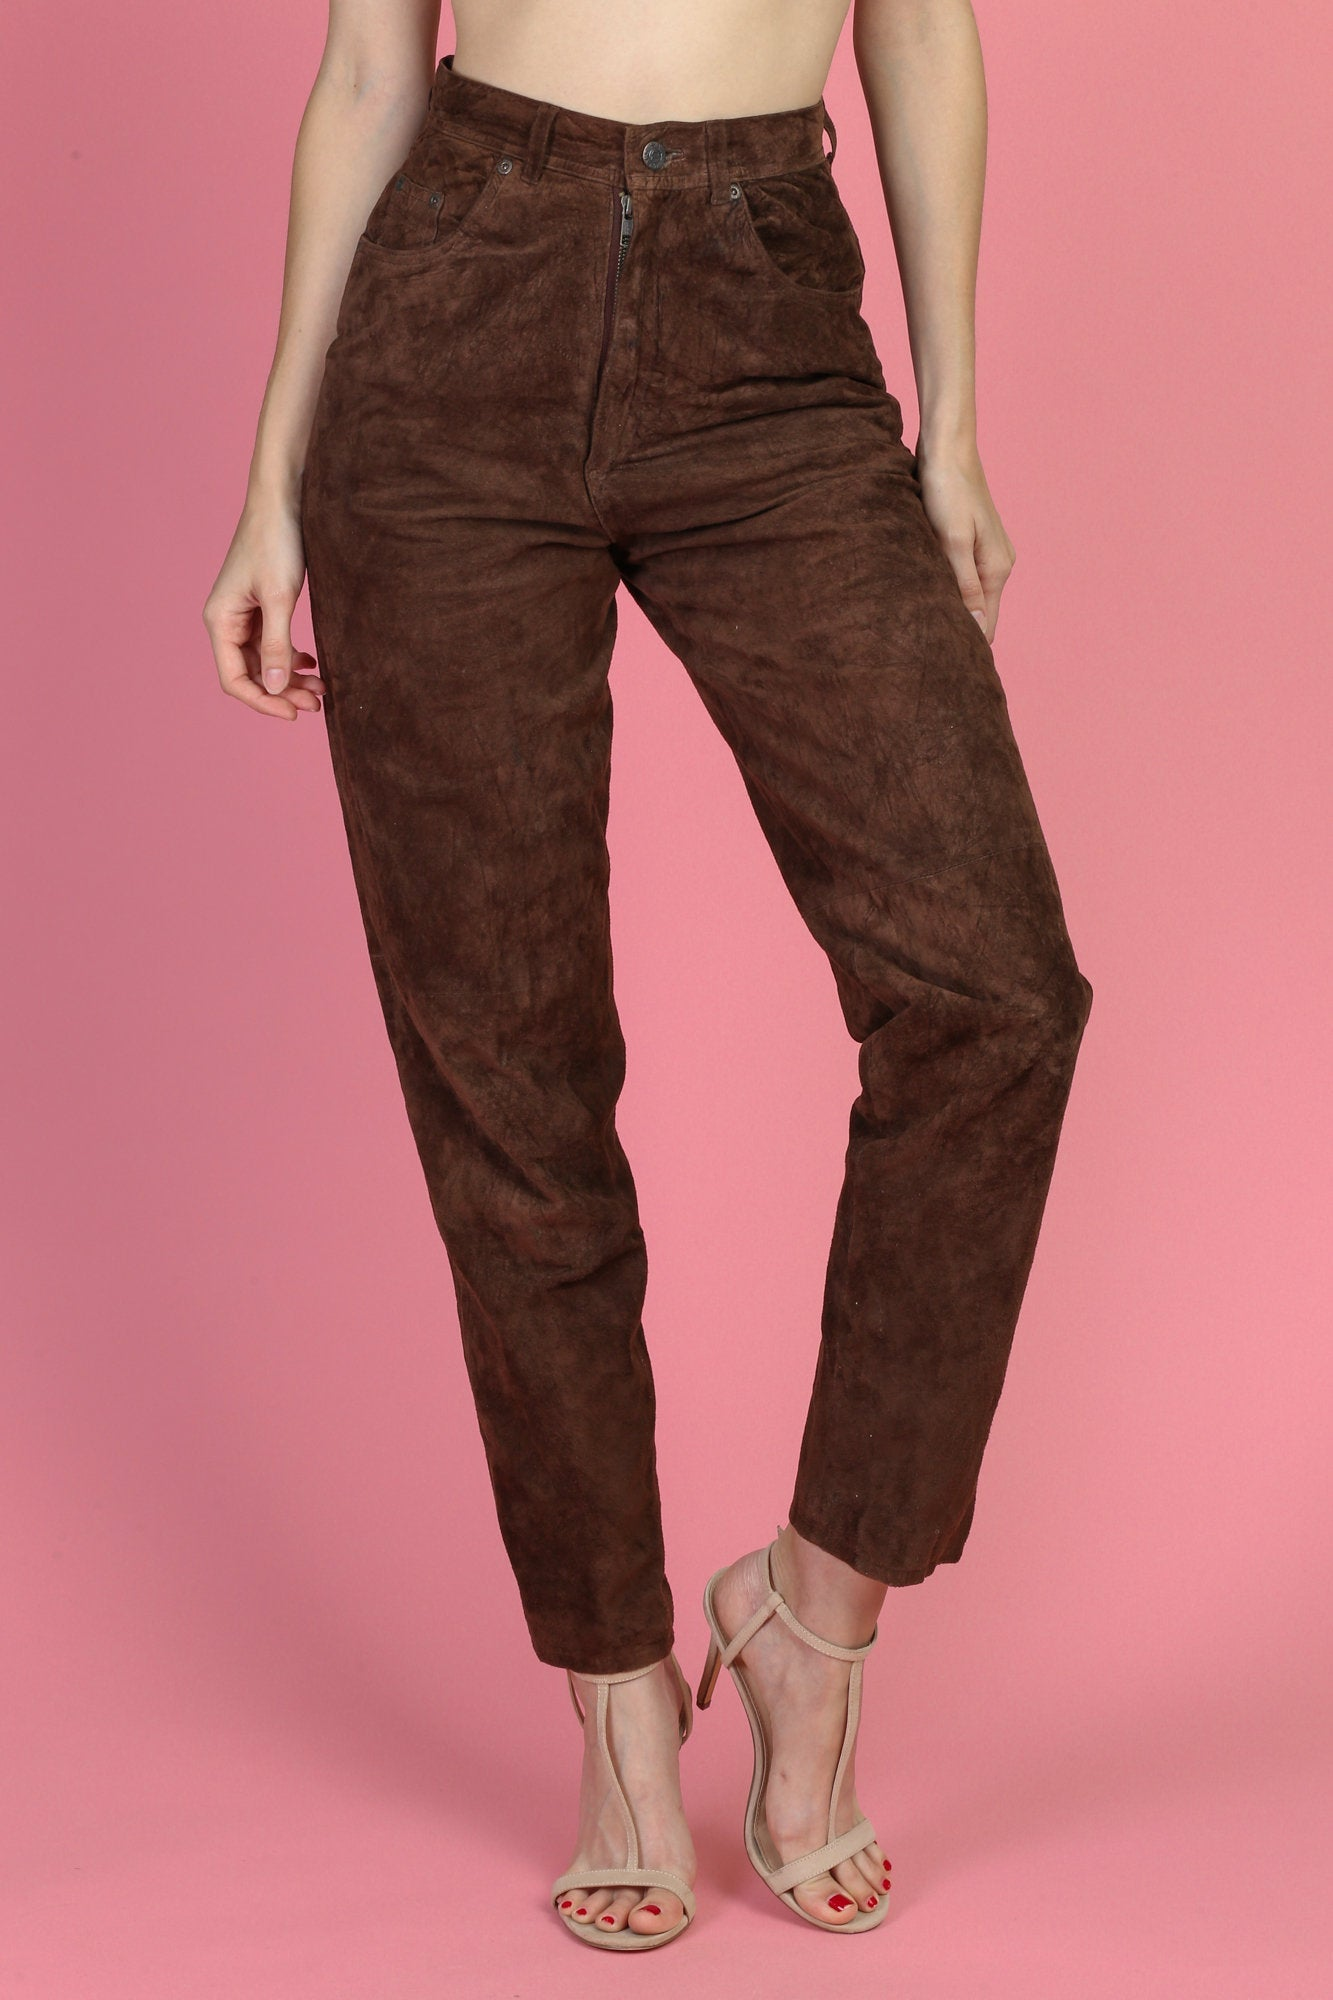 Vintage Suede High Waist Pants - Small, Size 6